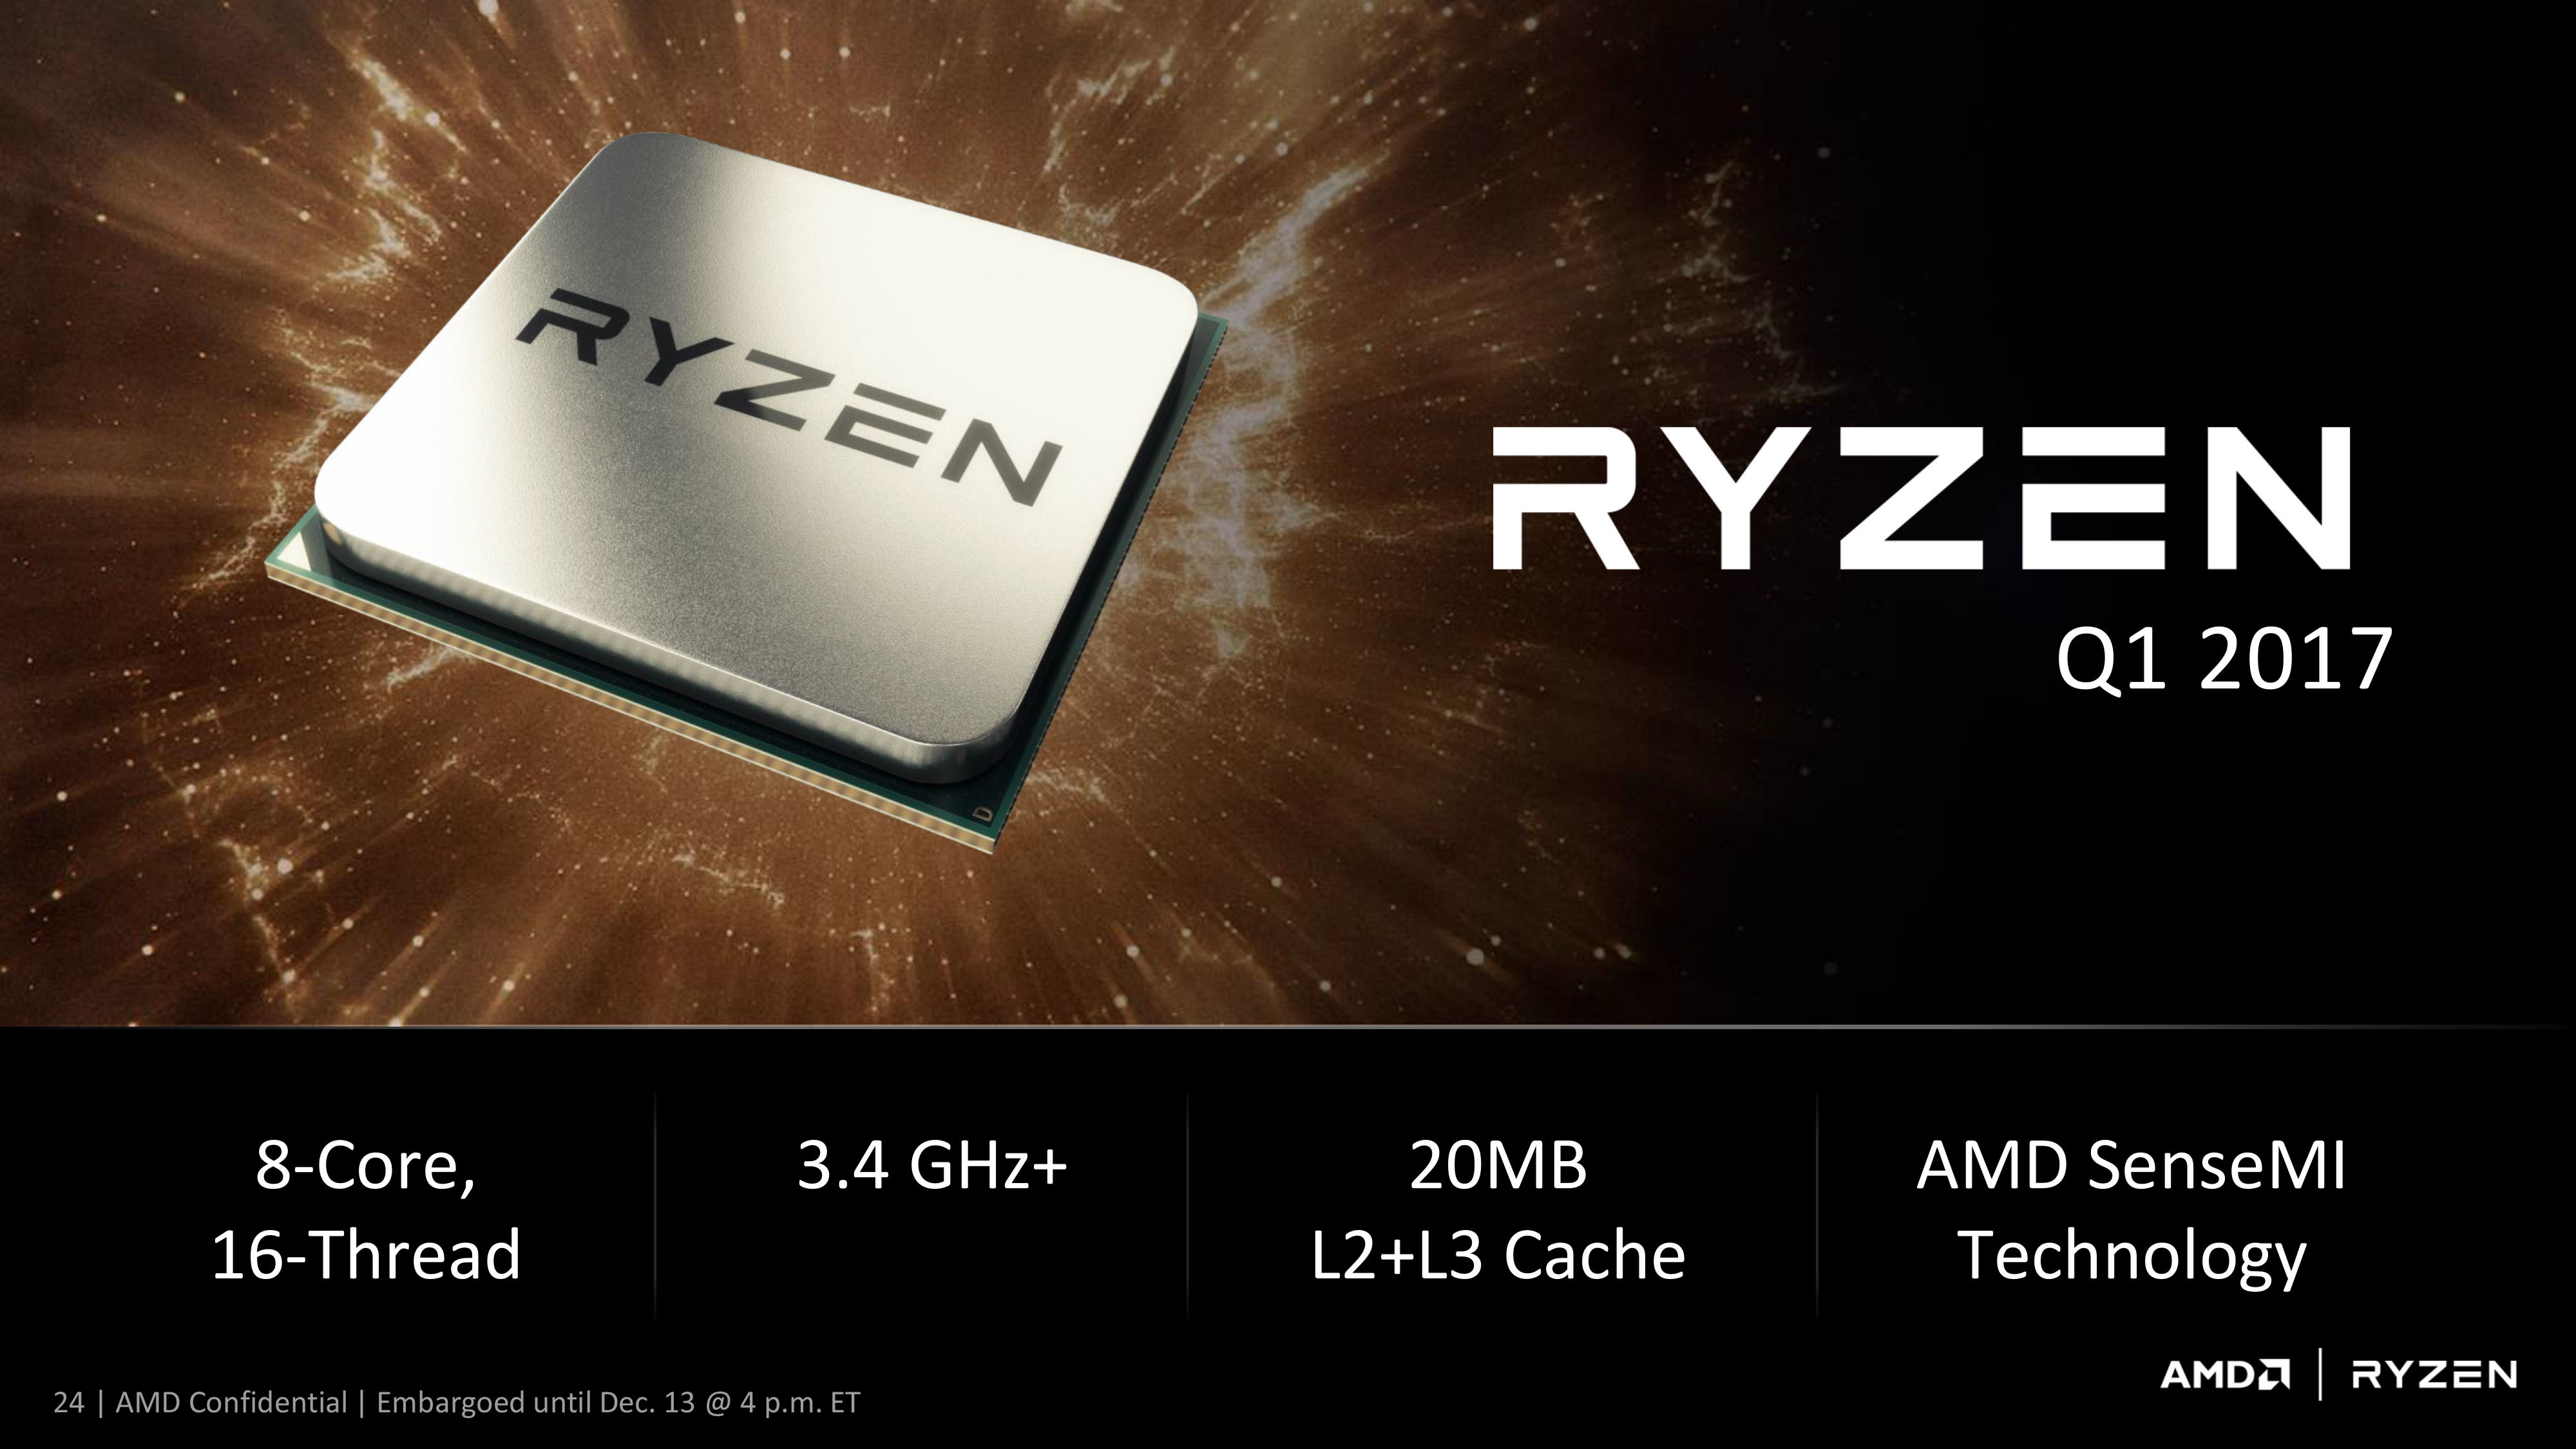 ryzen launch